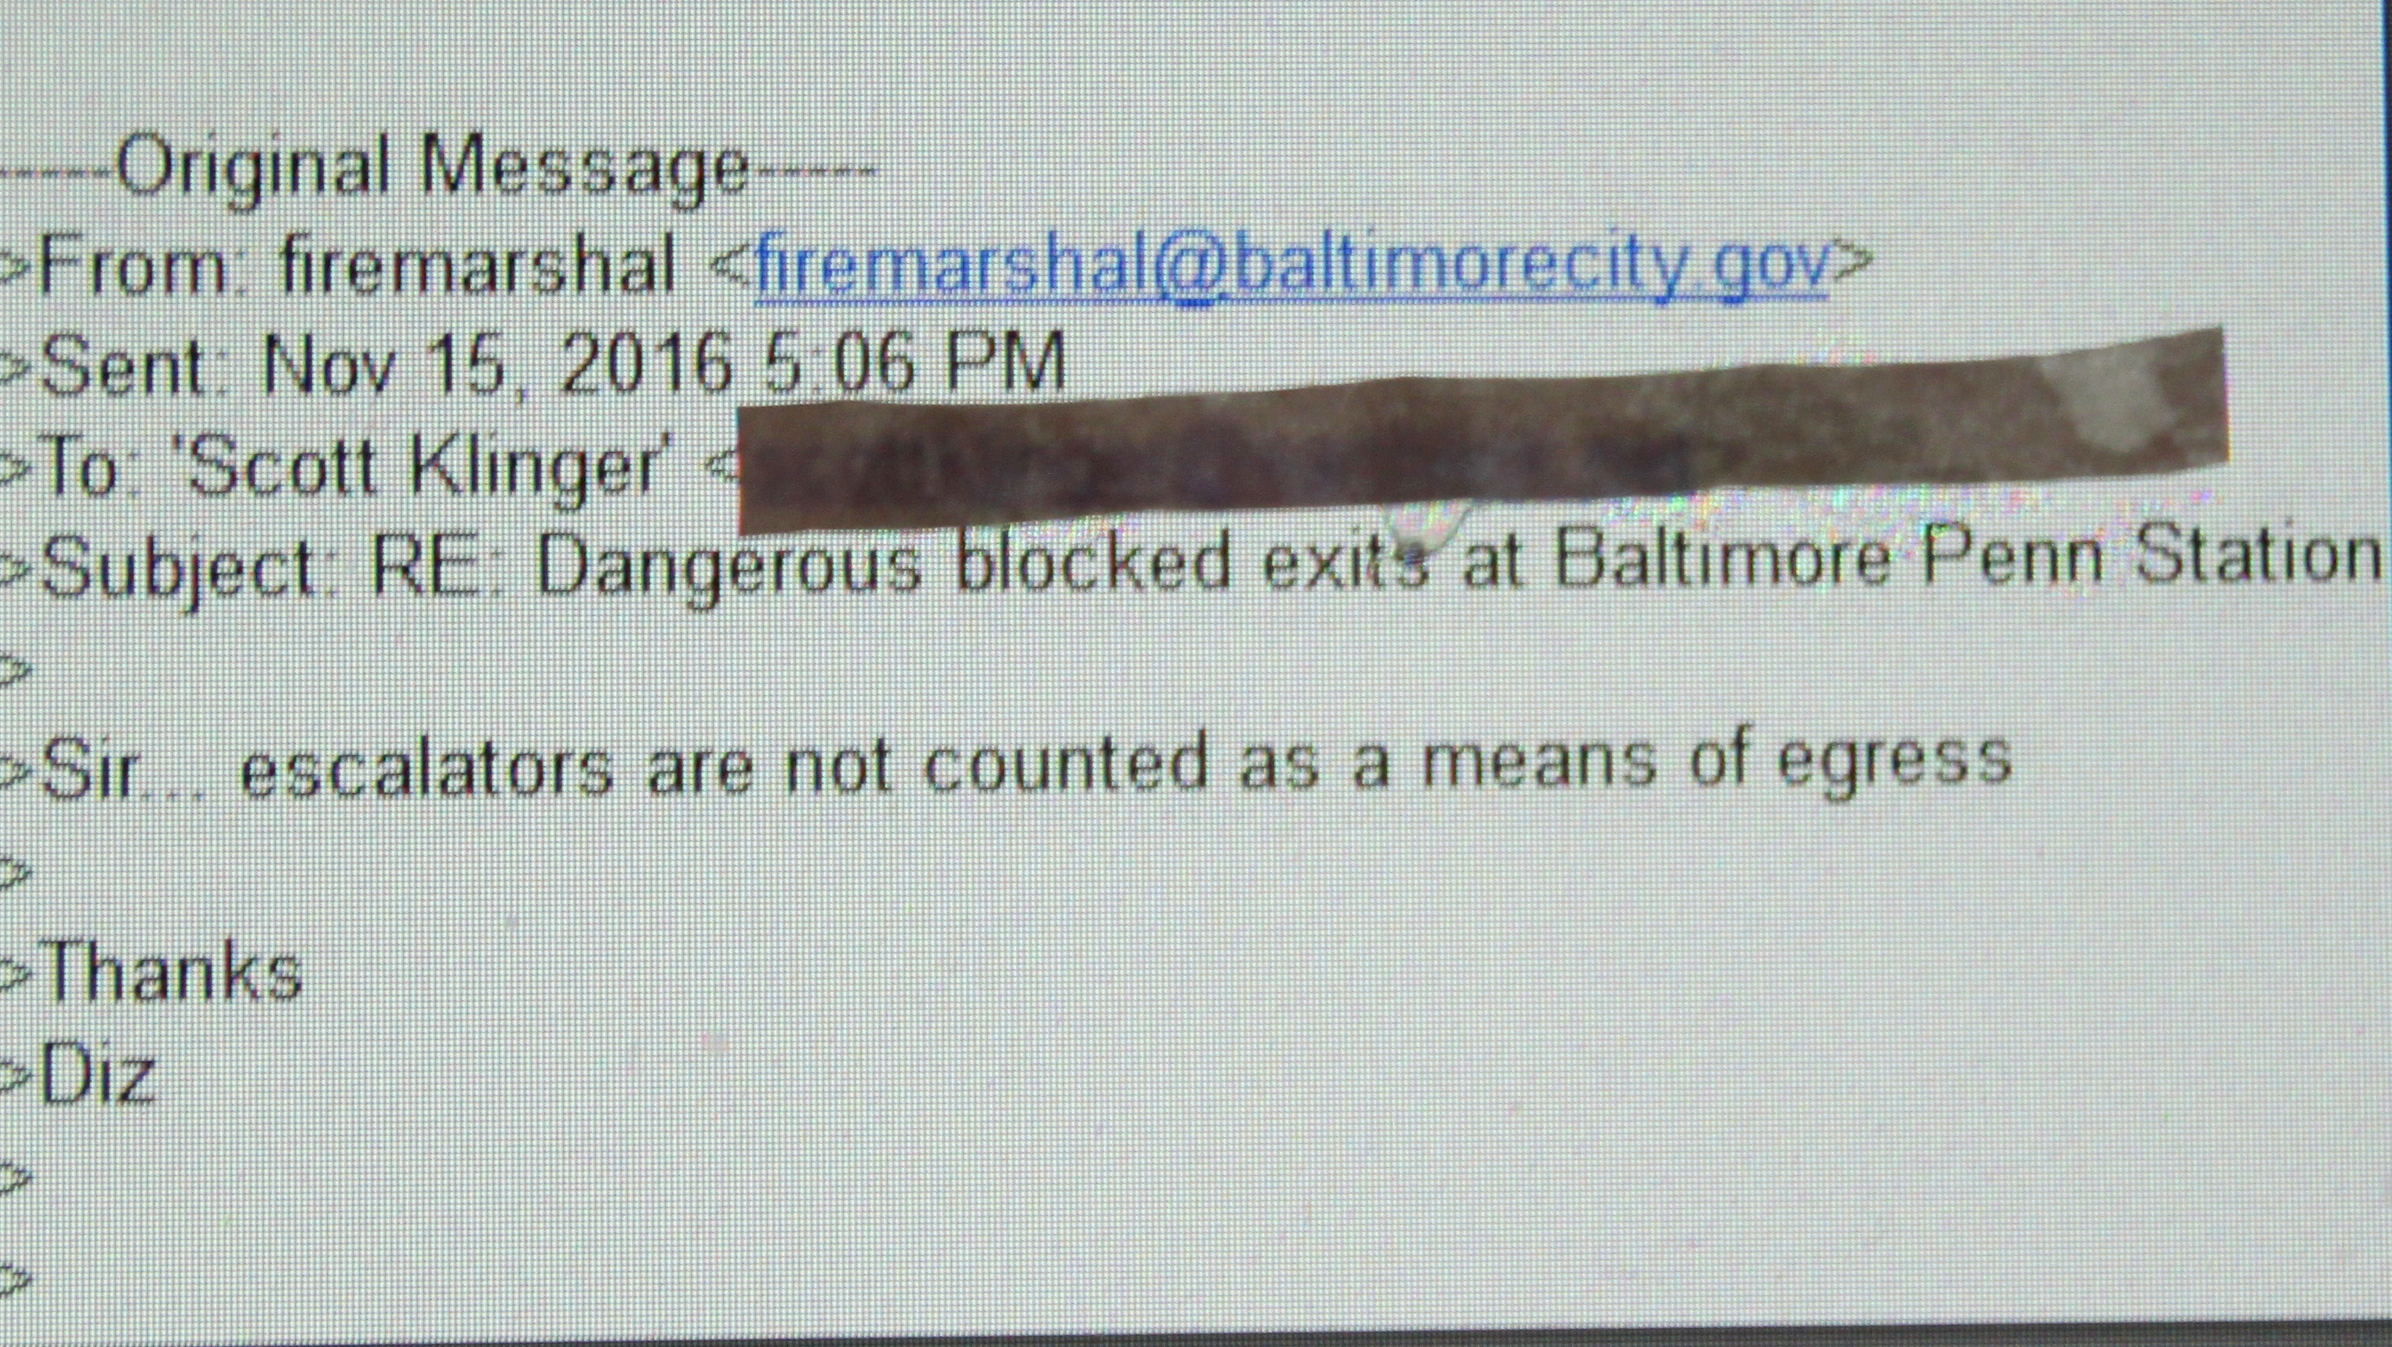 Baltimore City Fire Marshall reply to Scott Klinger re penn station escalator